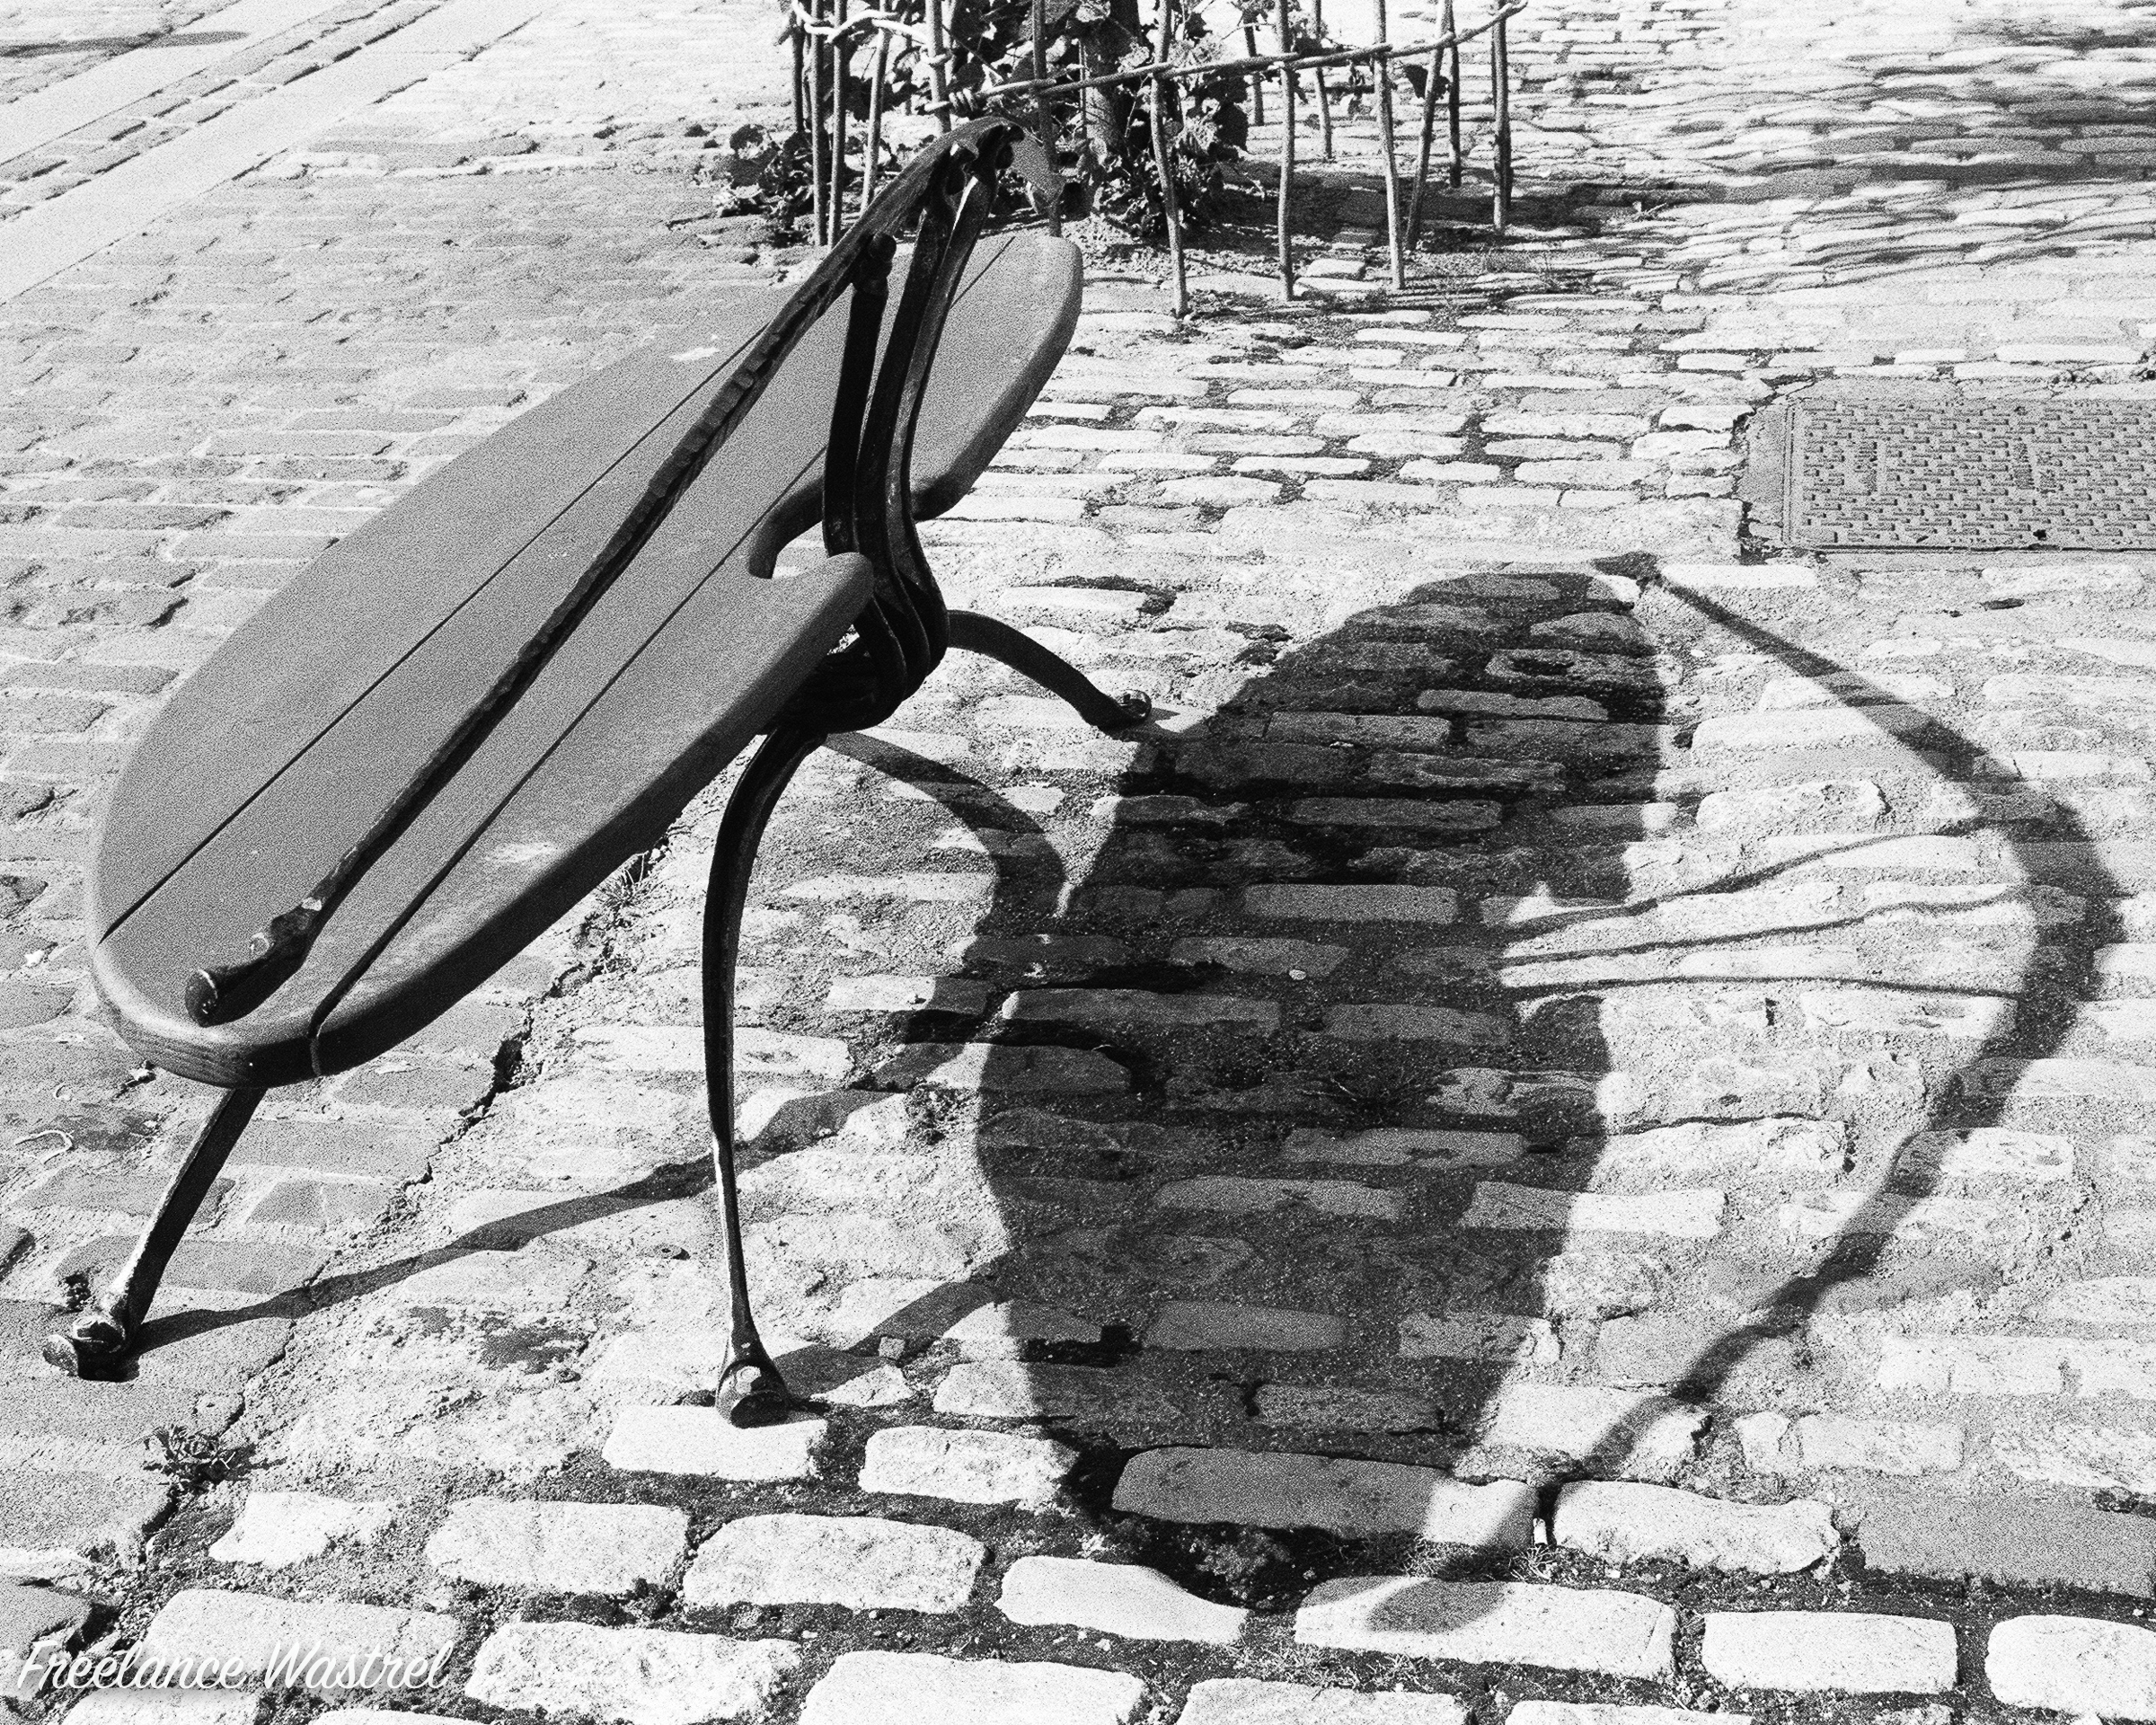 Bench shadow, Leith, August 2019